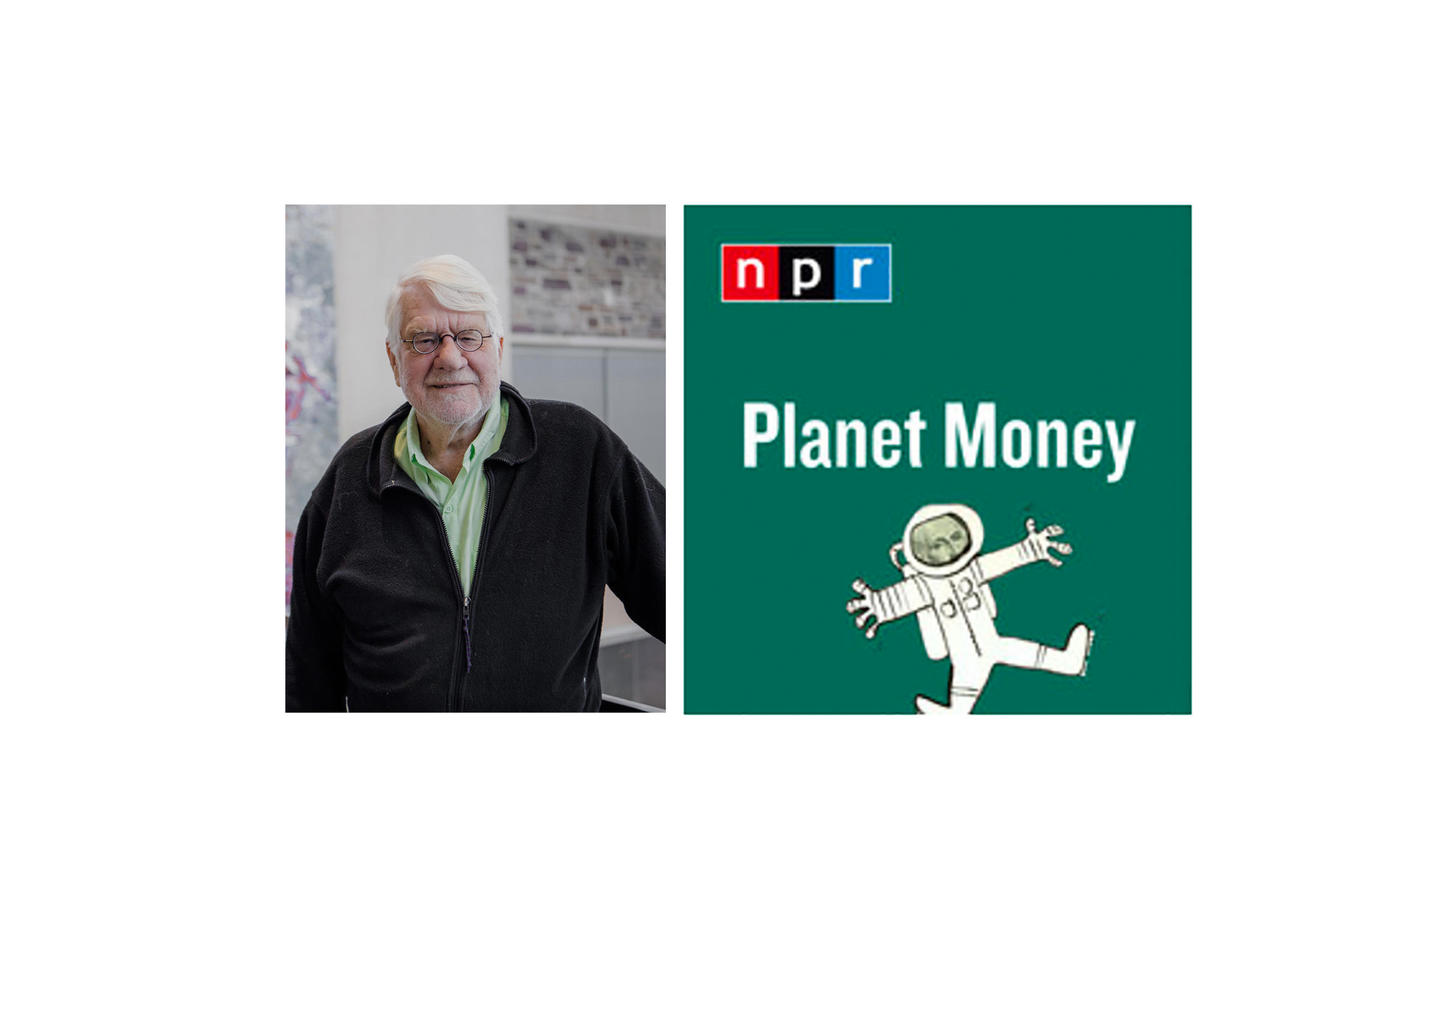 Orley Ashenfelter and NPR Planet Money logo